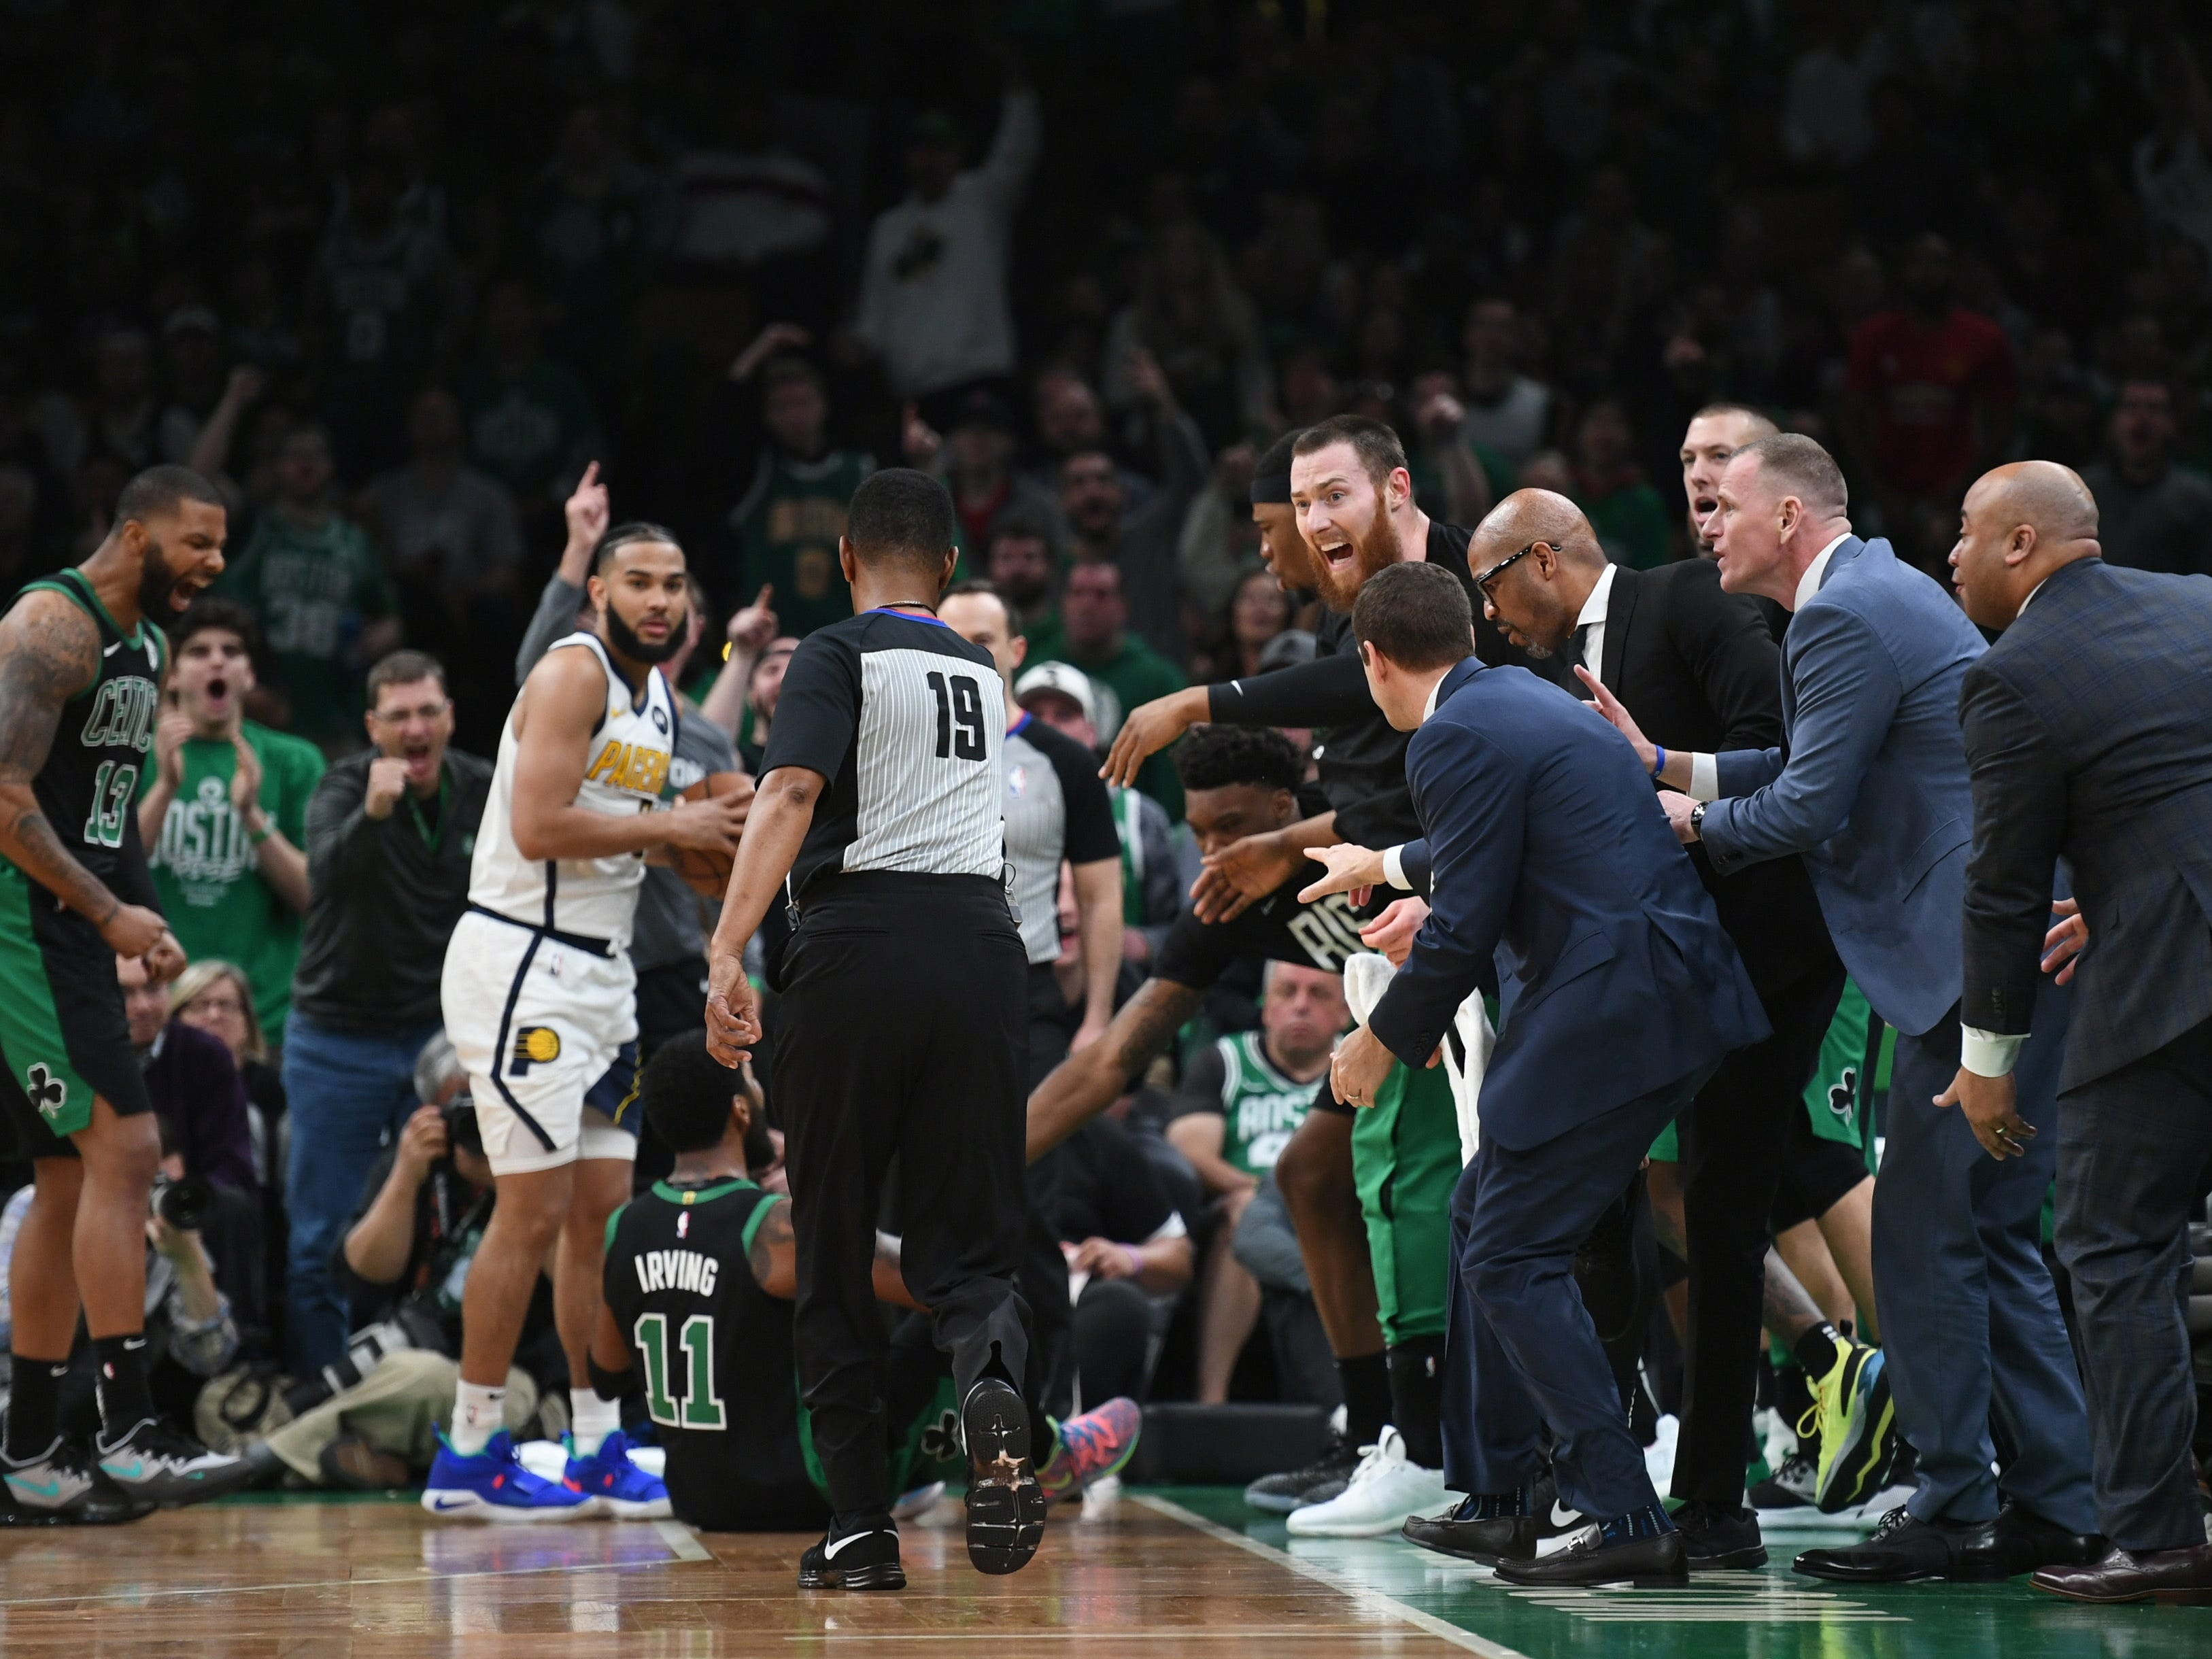 Apr 14, 2019; Boston, MA, USA; Boston Celtics center Aron Baynes (46) and the bench argue an out of bounds call by the official during the second half in game one of the first round of the 2019 NBA Playoffs at TD Garden.